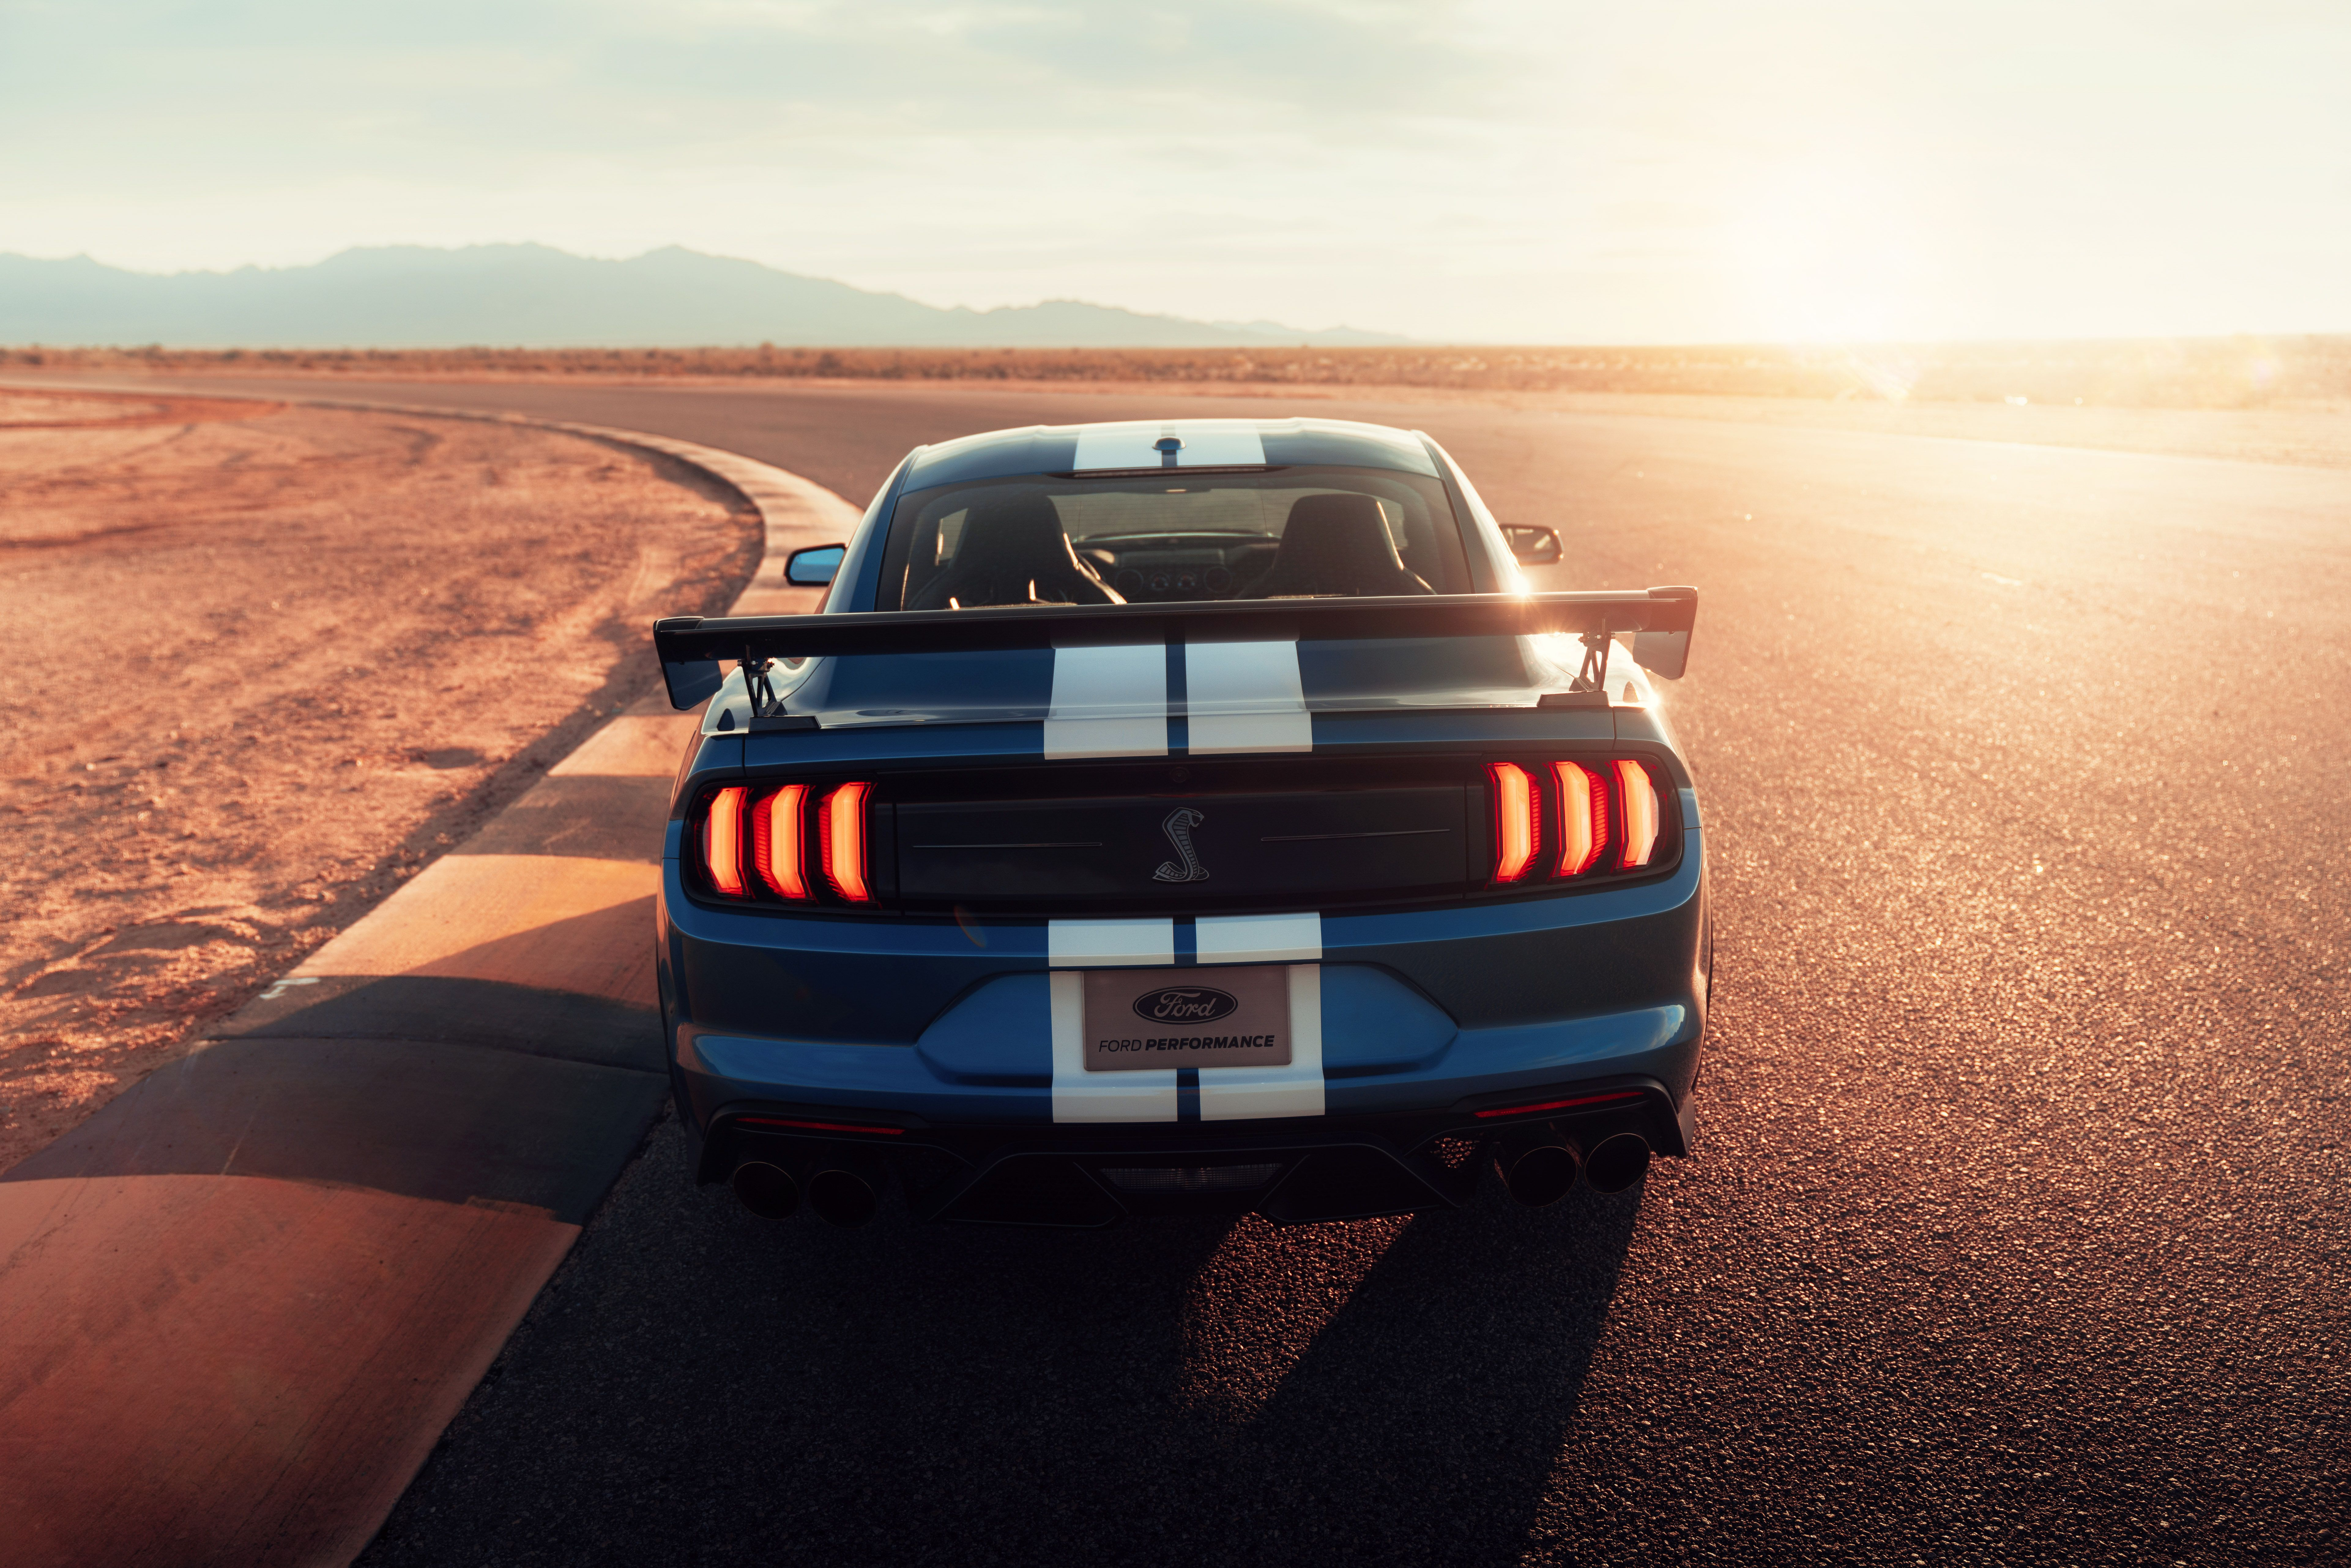 Ford S Most Powerful Mustang Shelby Gt500 To Date Top Speed Governed